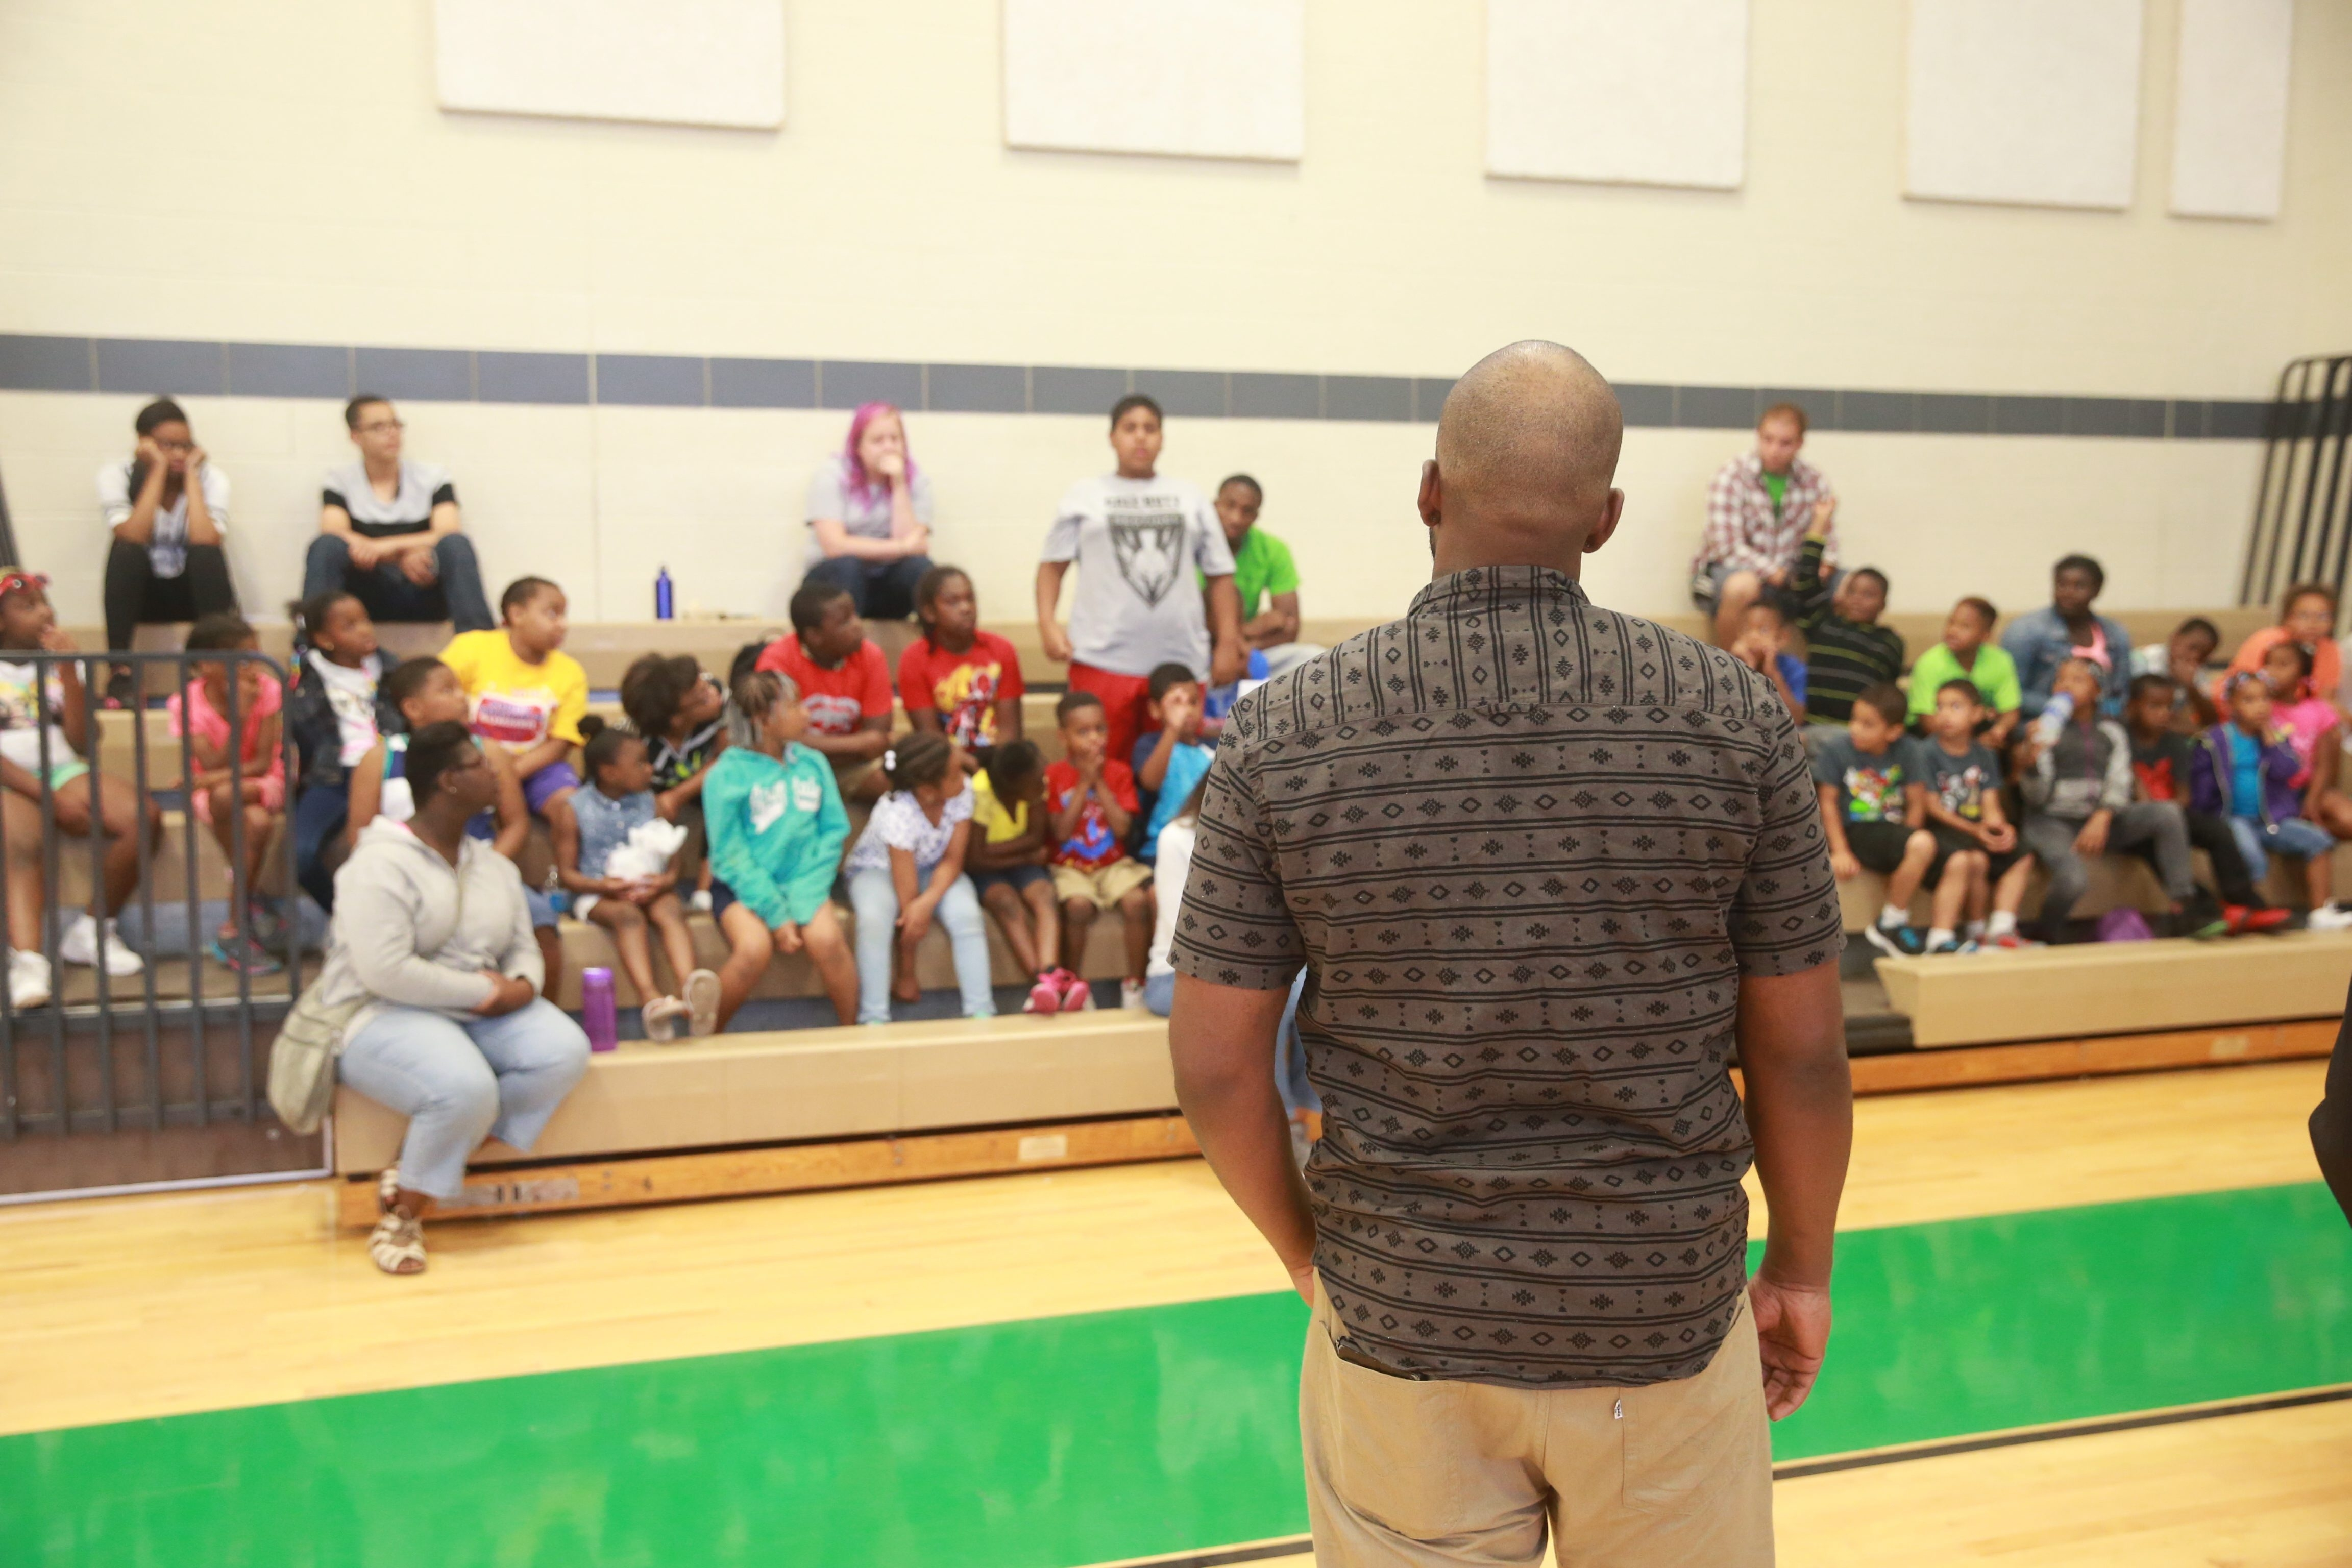 At Delavan-Grider Community Center, kids at summer camp hear from a former Schuele Boys associate about not repeating his mistakes.